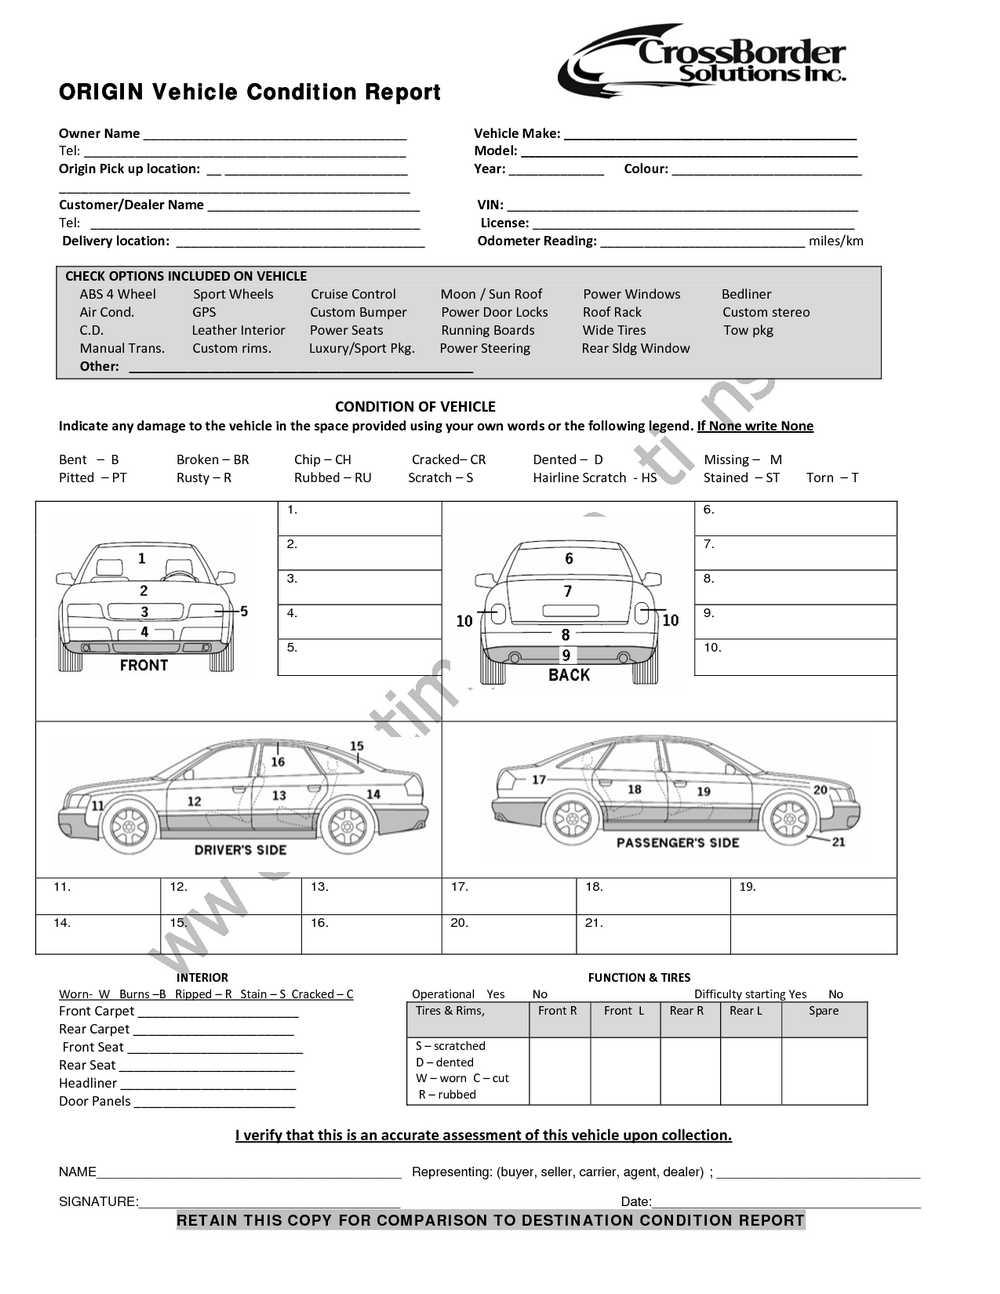 Daily Vehicle Inspection Form Template